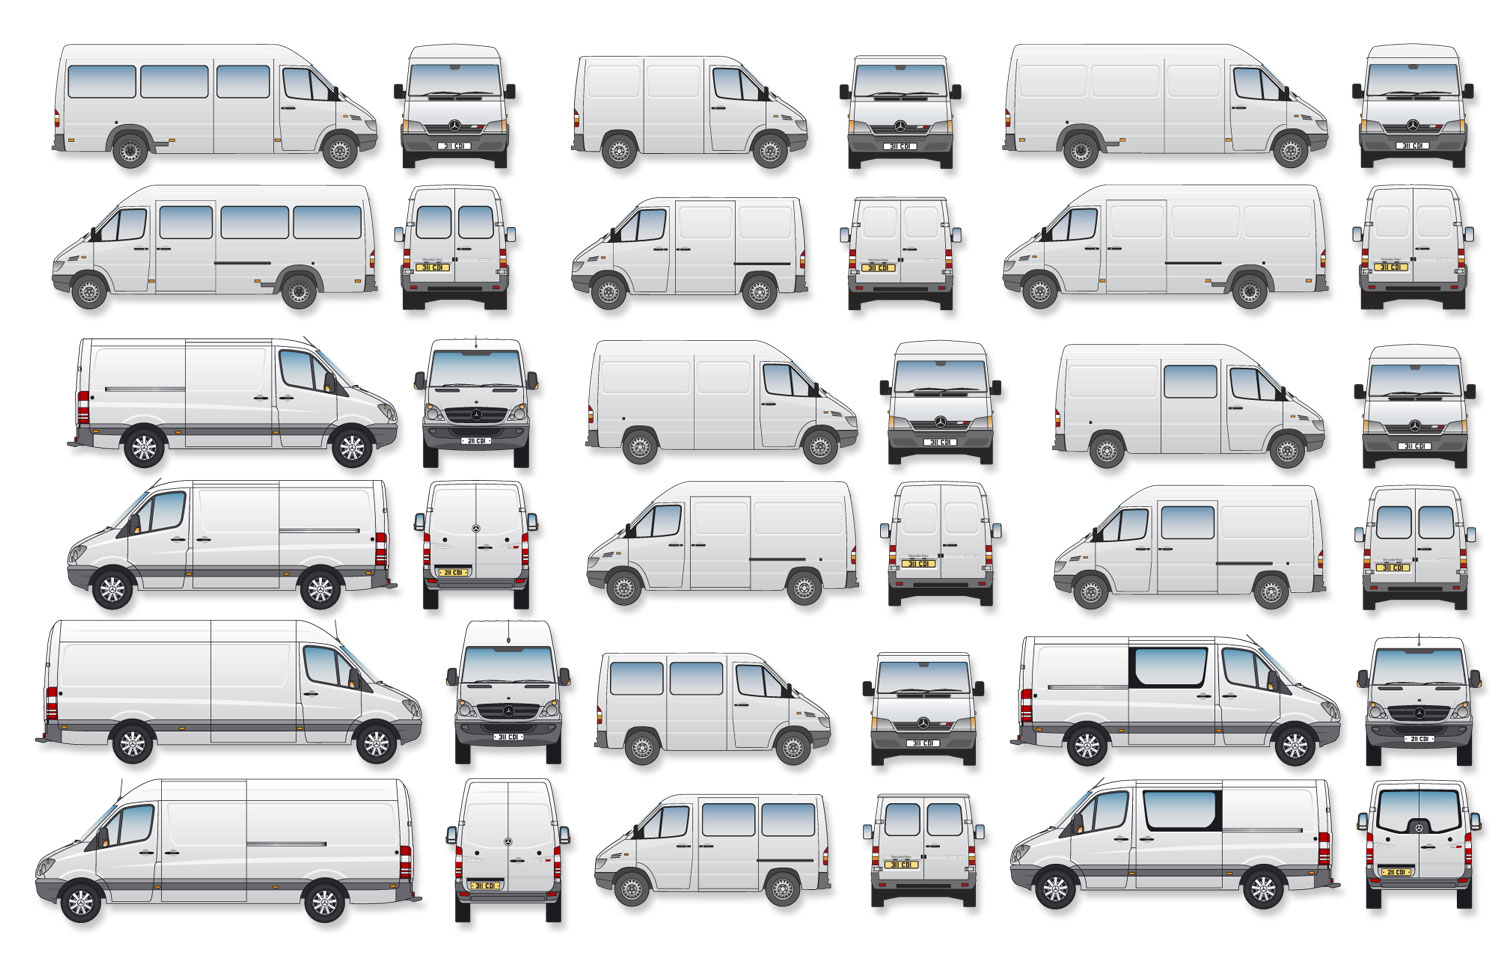 Bevorzugt Benz Sprinter Signwriter's vector drawings, blueprints (Complete Set) TB83